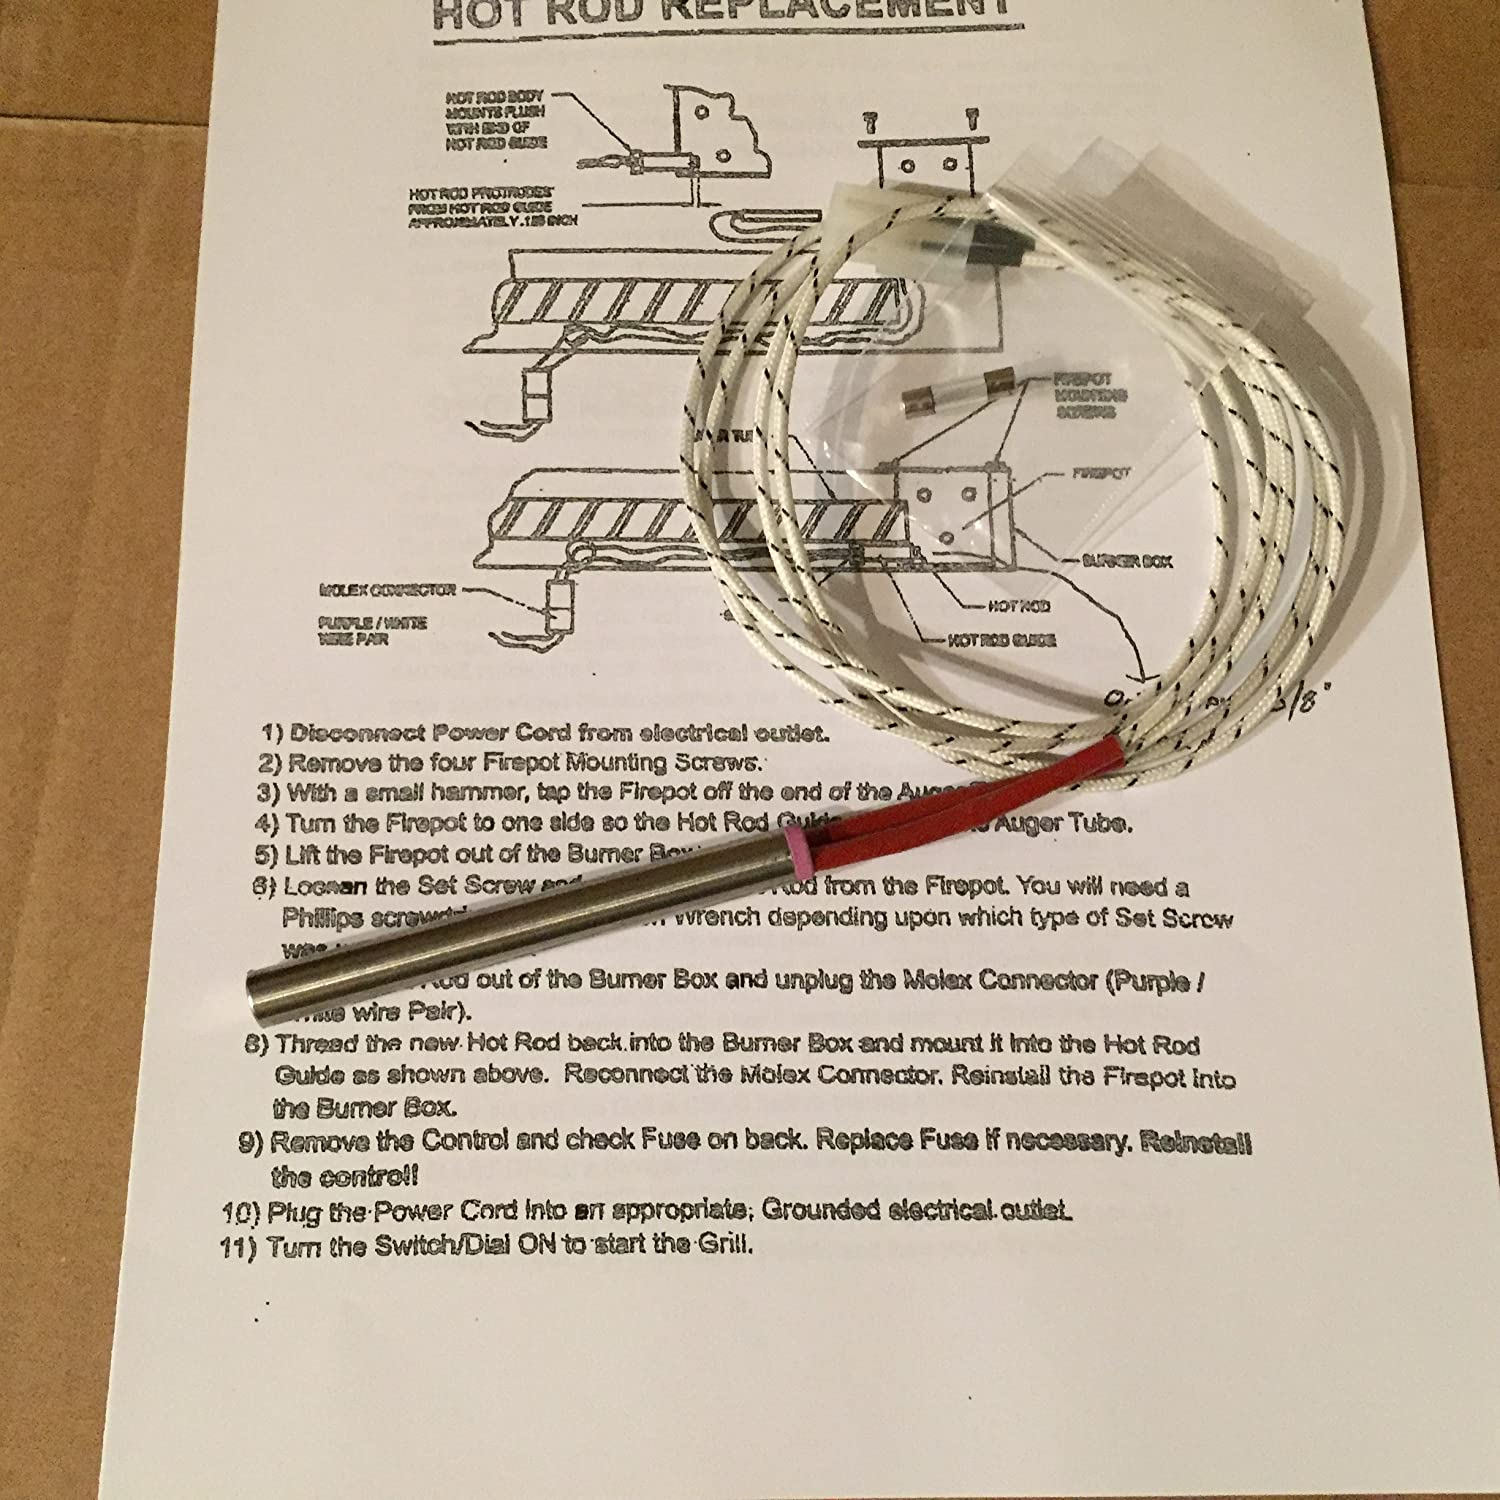 traeger smoker wiring diagrams wire harness tying escalade